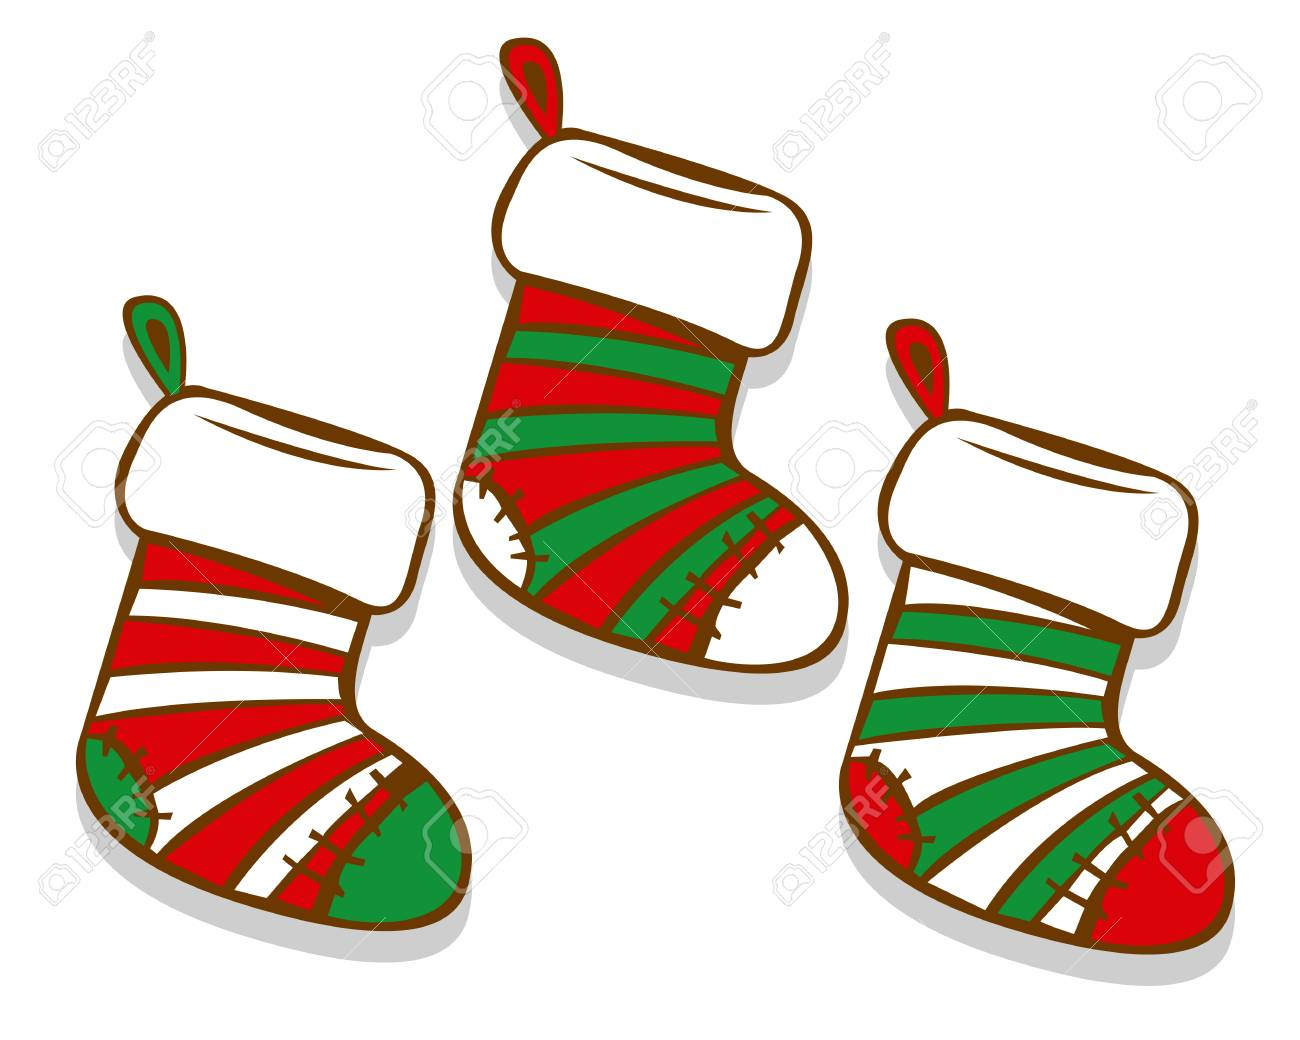 Christmas Stockings Cartoon.Vector Cartoon Christmas Socks Isolated On White Background